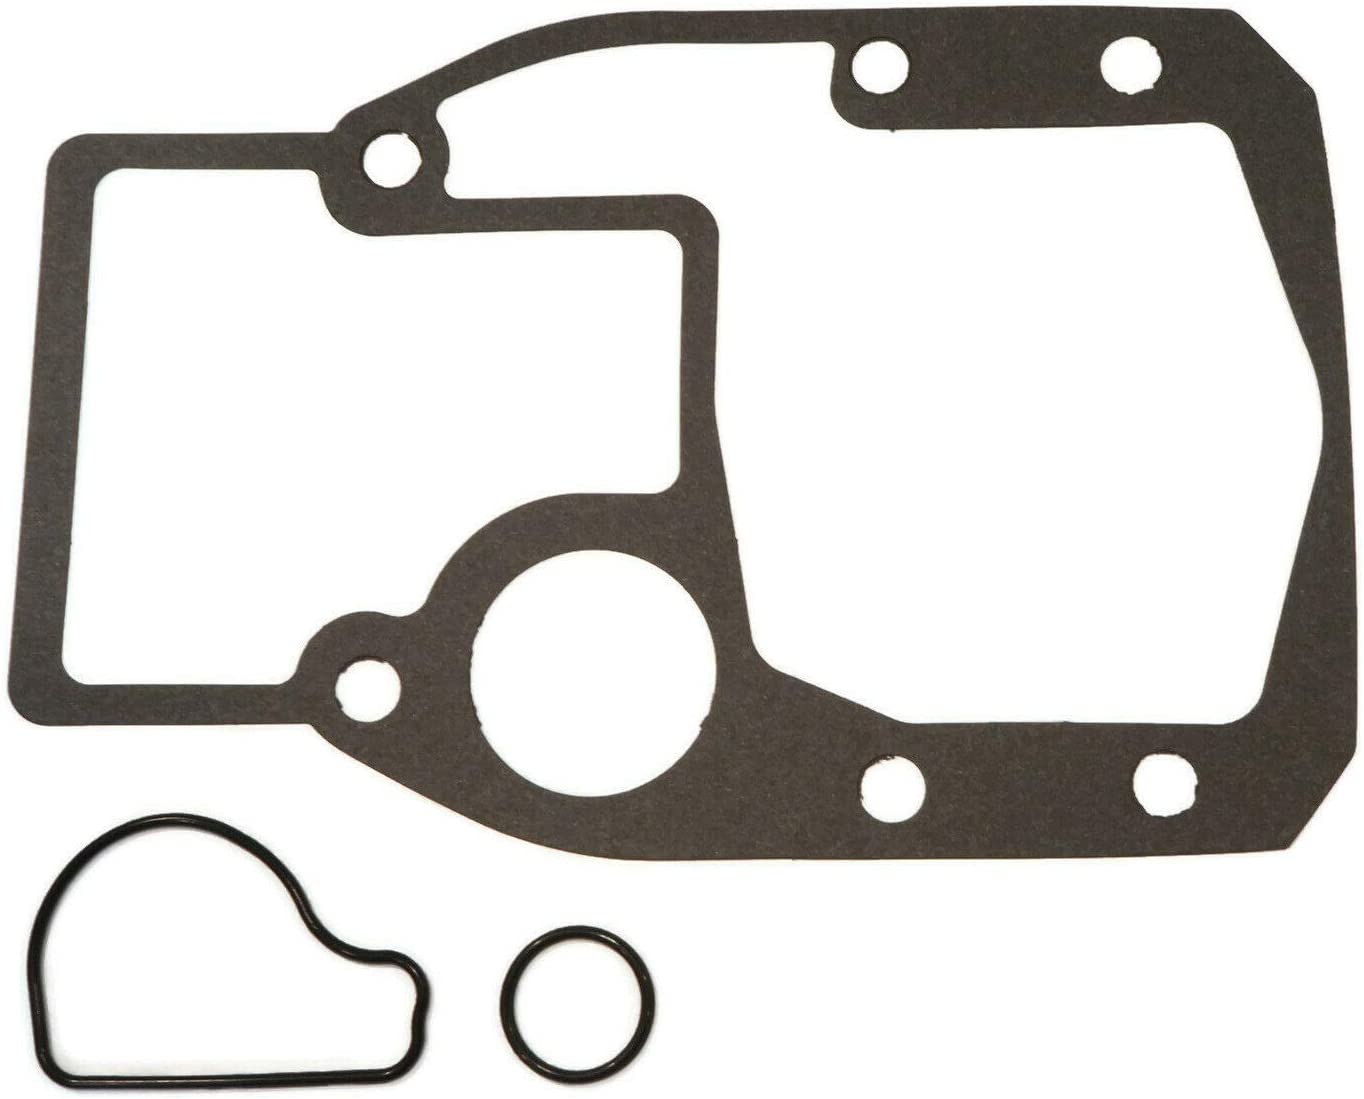 Gasket Set with Mounting Gasket 0915840, Seal 0911823, and O-Ring 0911851